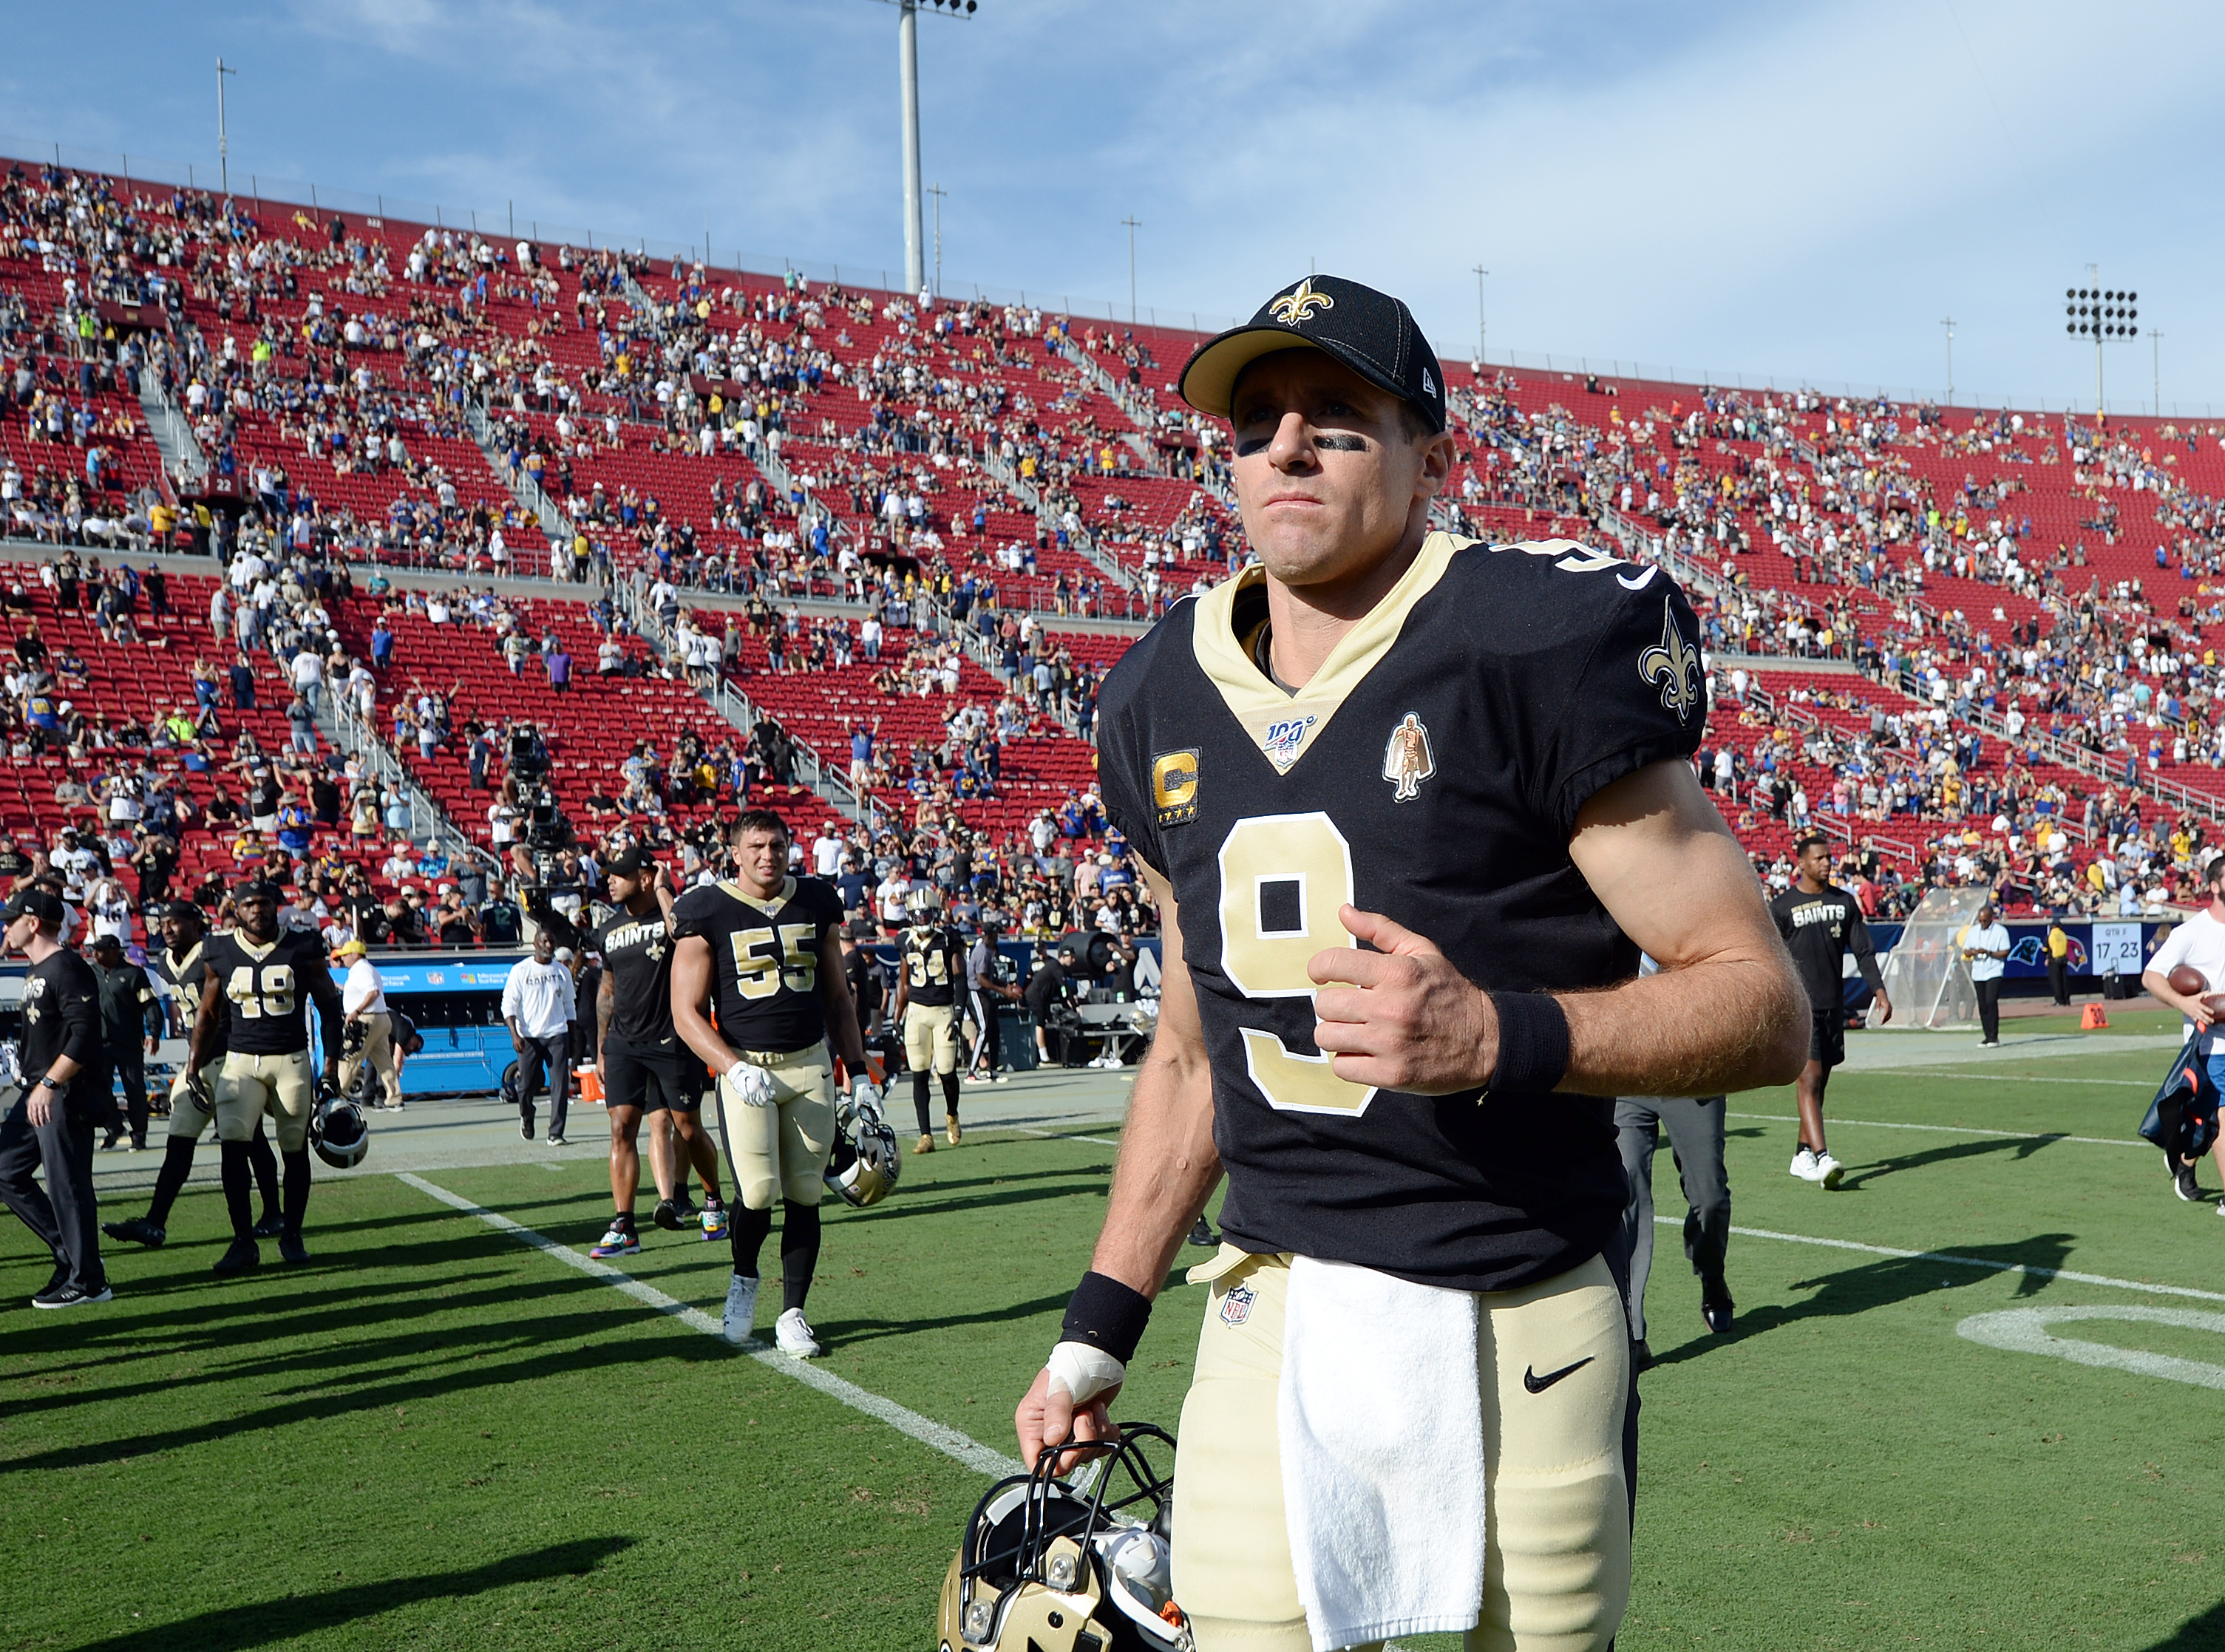 NFL 100 All-Time team: What happened with Drew Brees?